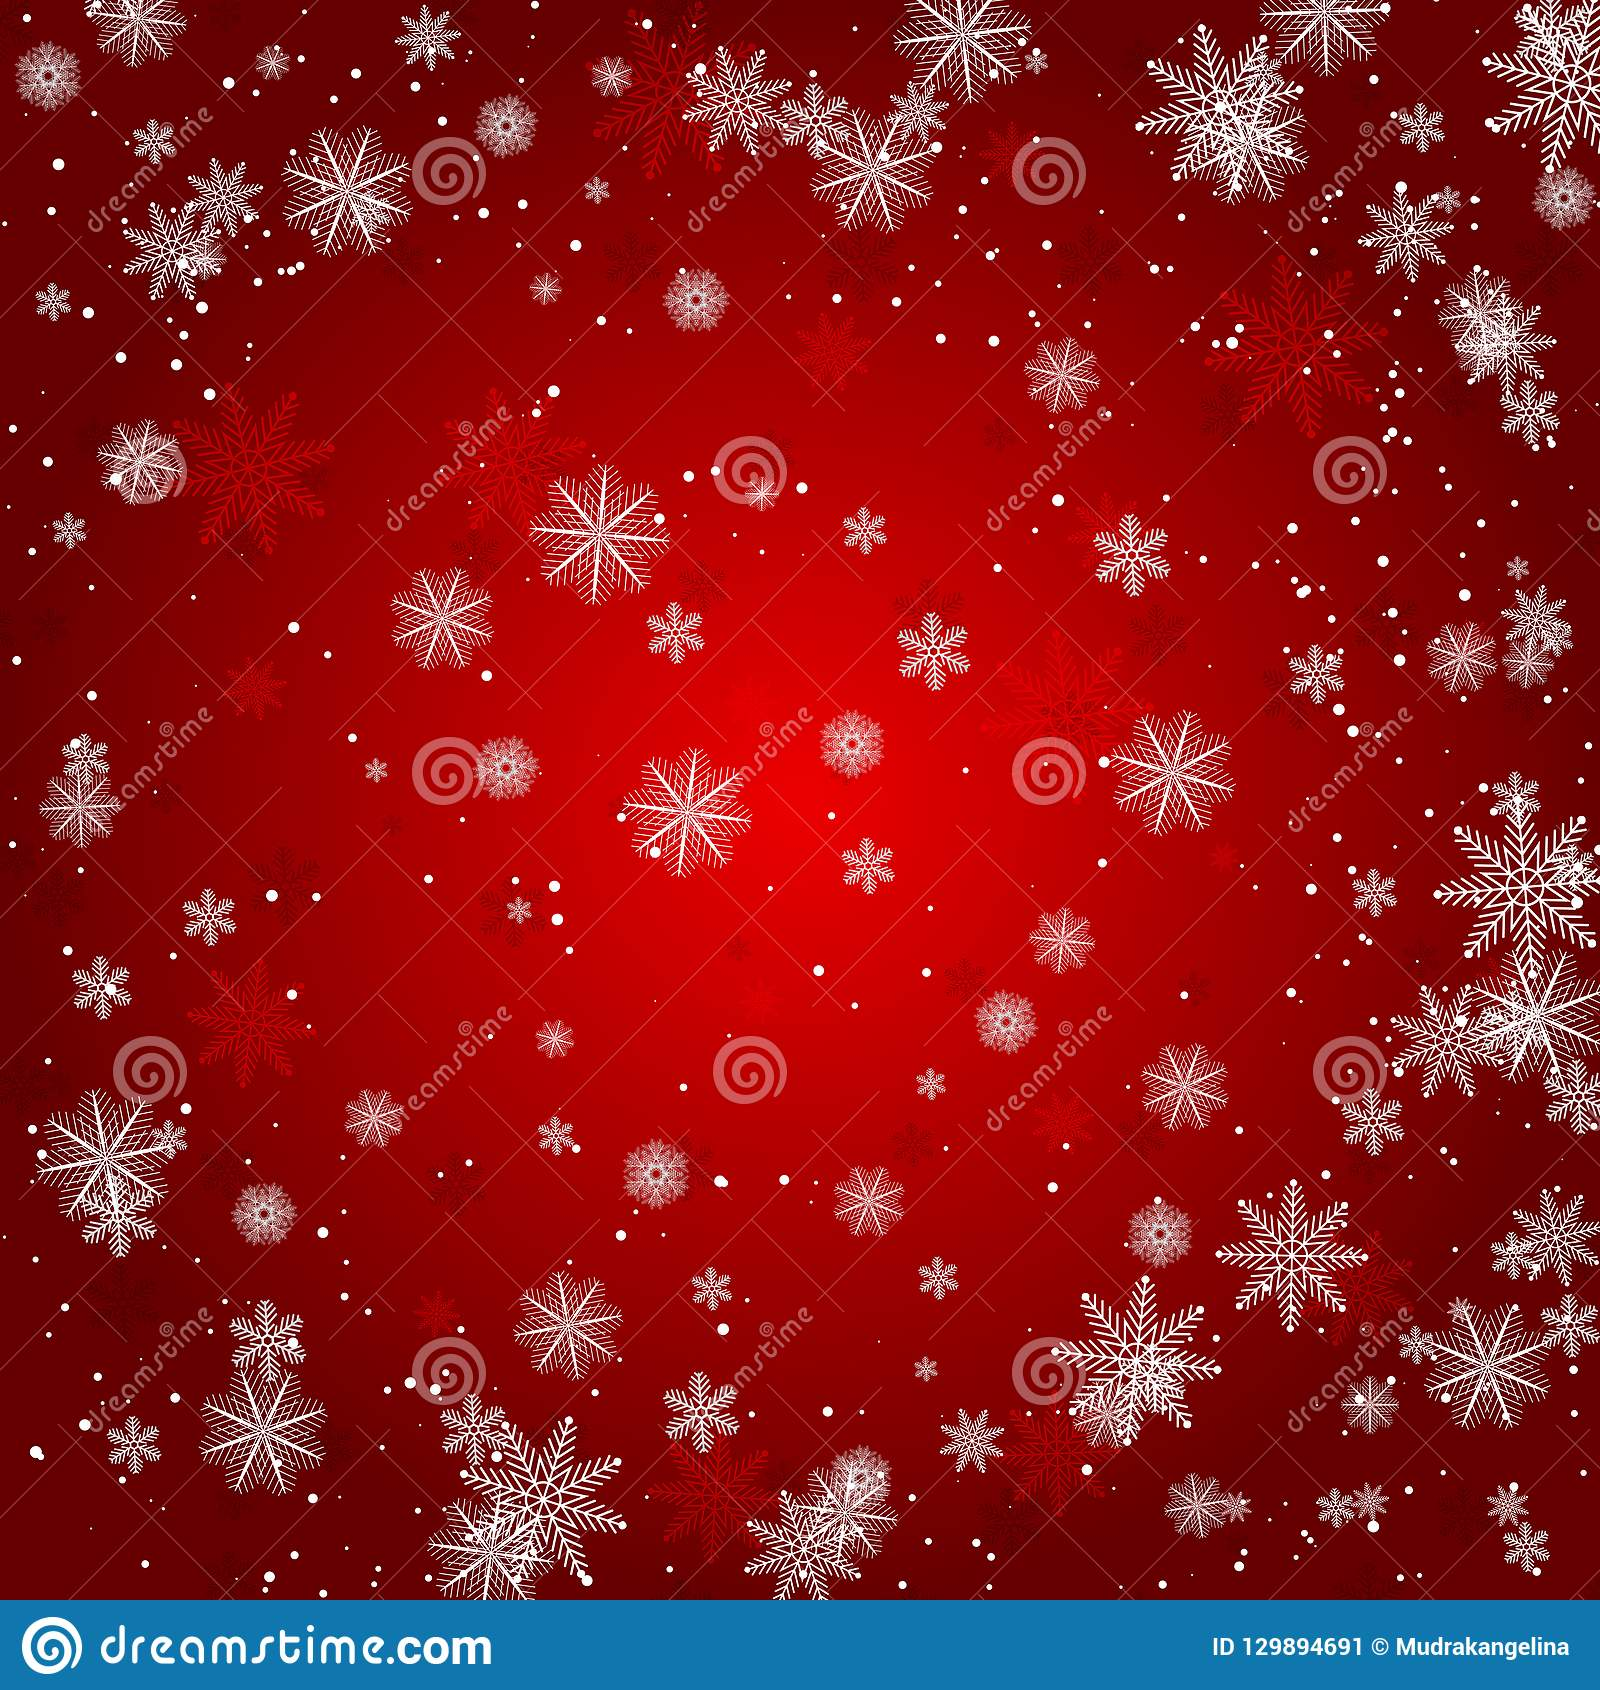 Christmas snowflake with night star light and snow fall abstract bakcground vector illustration eps10